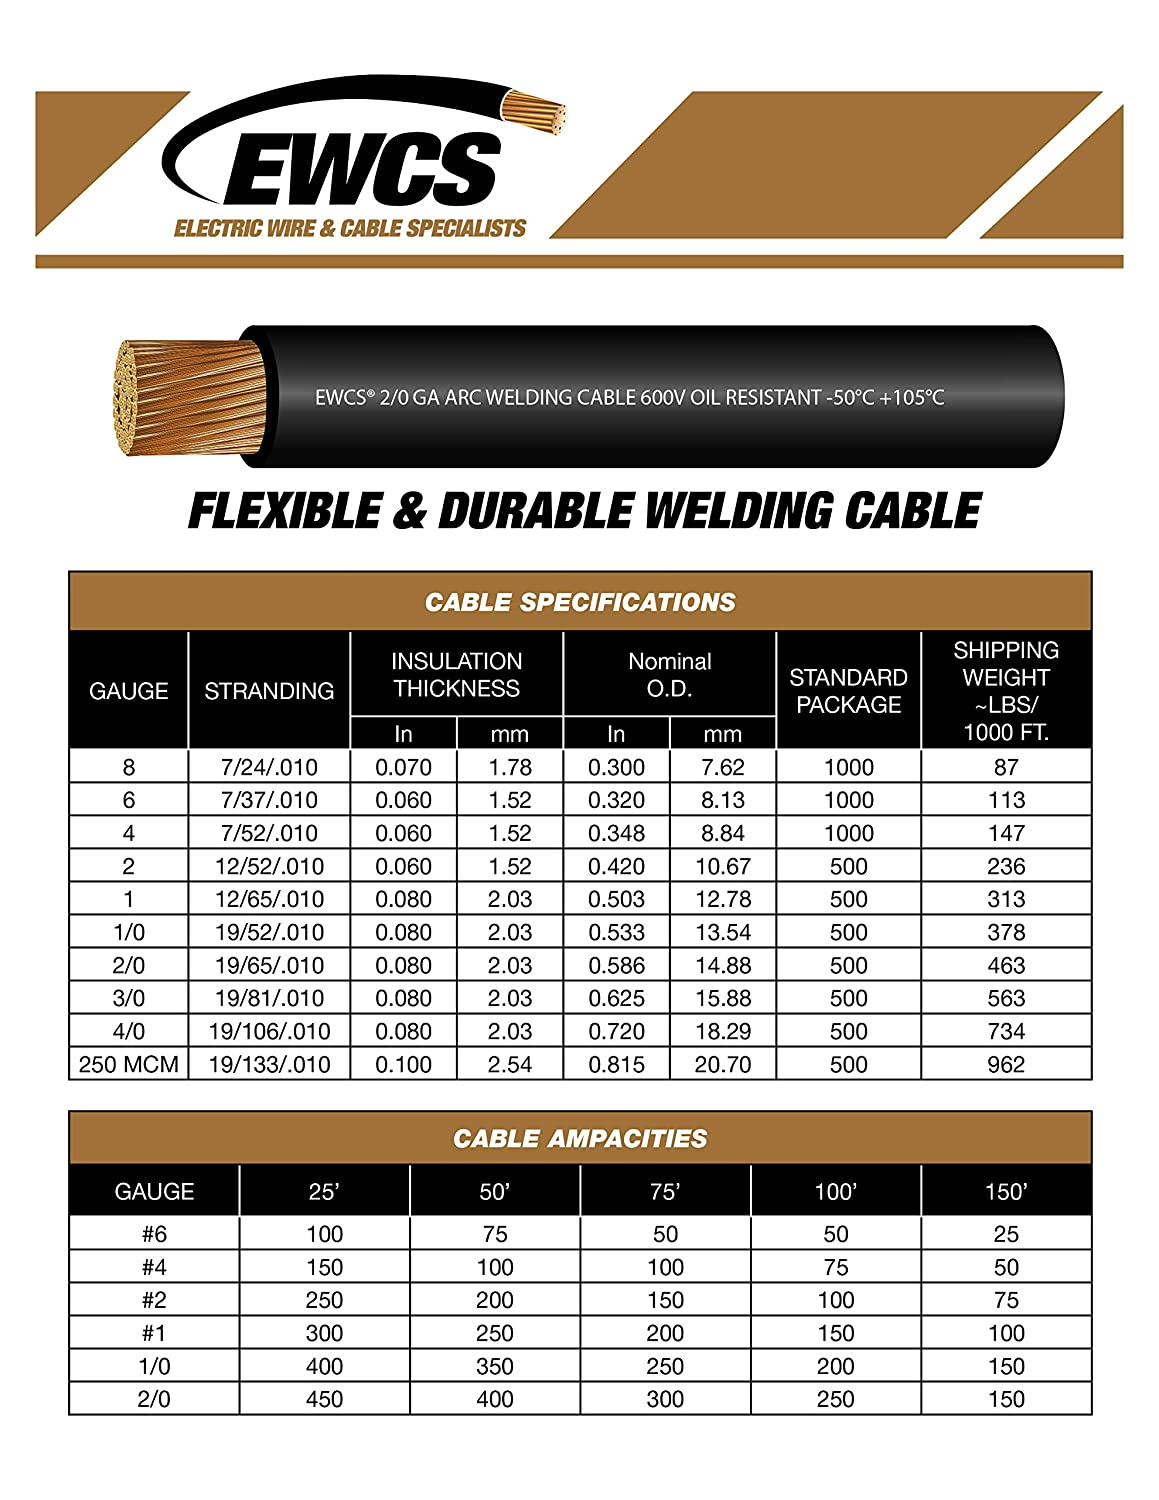 EWCS 1/0 AWG Premium Extra Flexible Welding Cable 600 Volt - RED - 25 FEET Spec - Made in The USA! - - Amazon.com